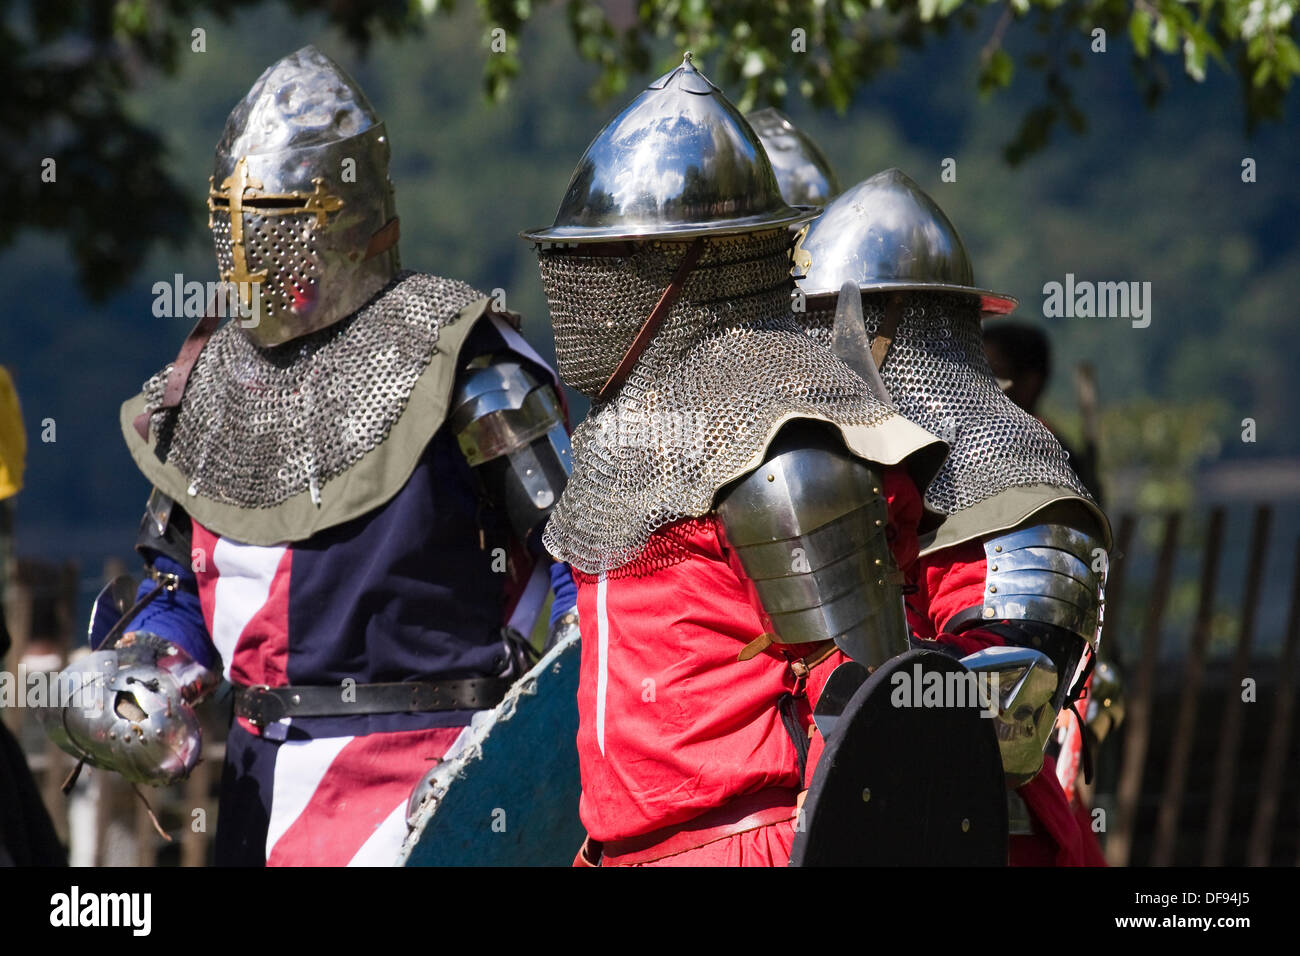 New York City USA Sept 29th 2013. Medieval Festival at Fort Tryon Park. Armored Knights on the field of battle at the Medieval Festival in Fort Tryon Park in the Inwood neighborhood of NYC. Credit:  Anthony Pleva/Alamy Live News - Stock Image